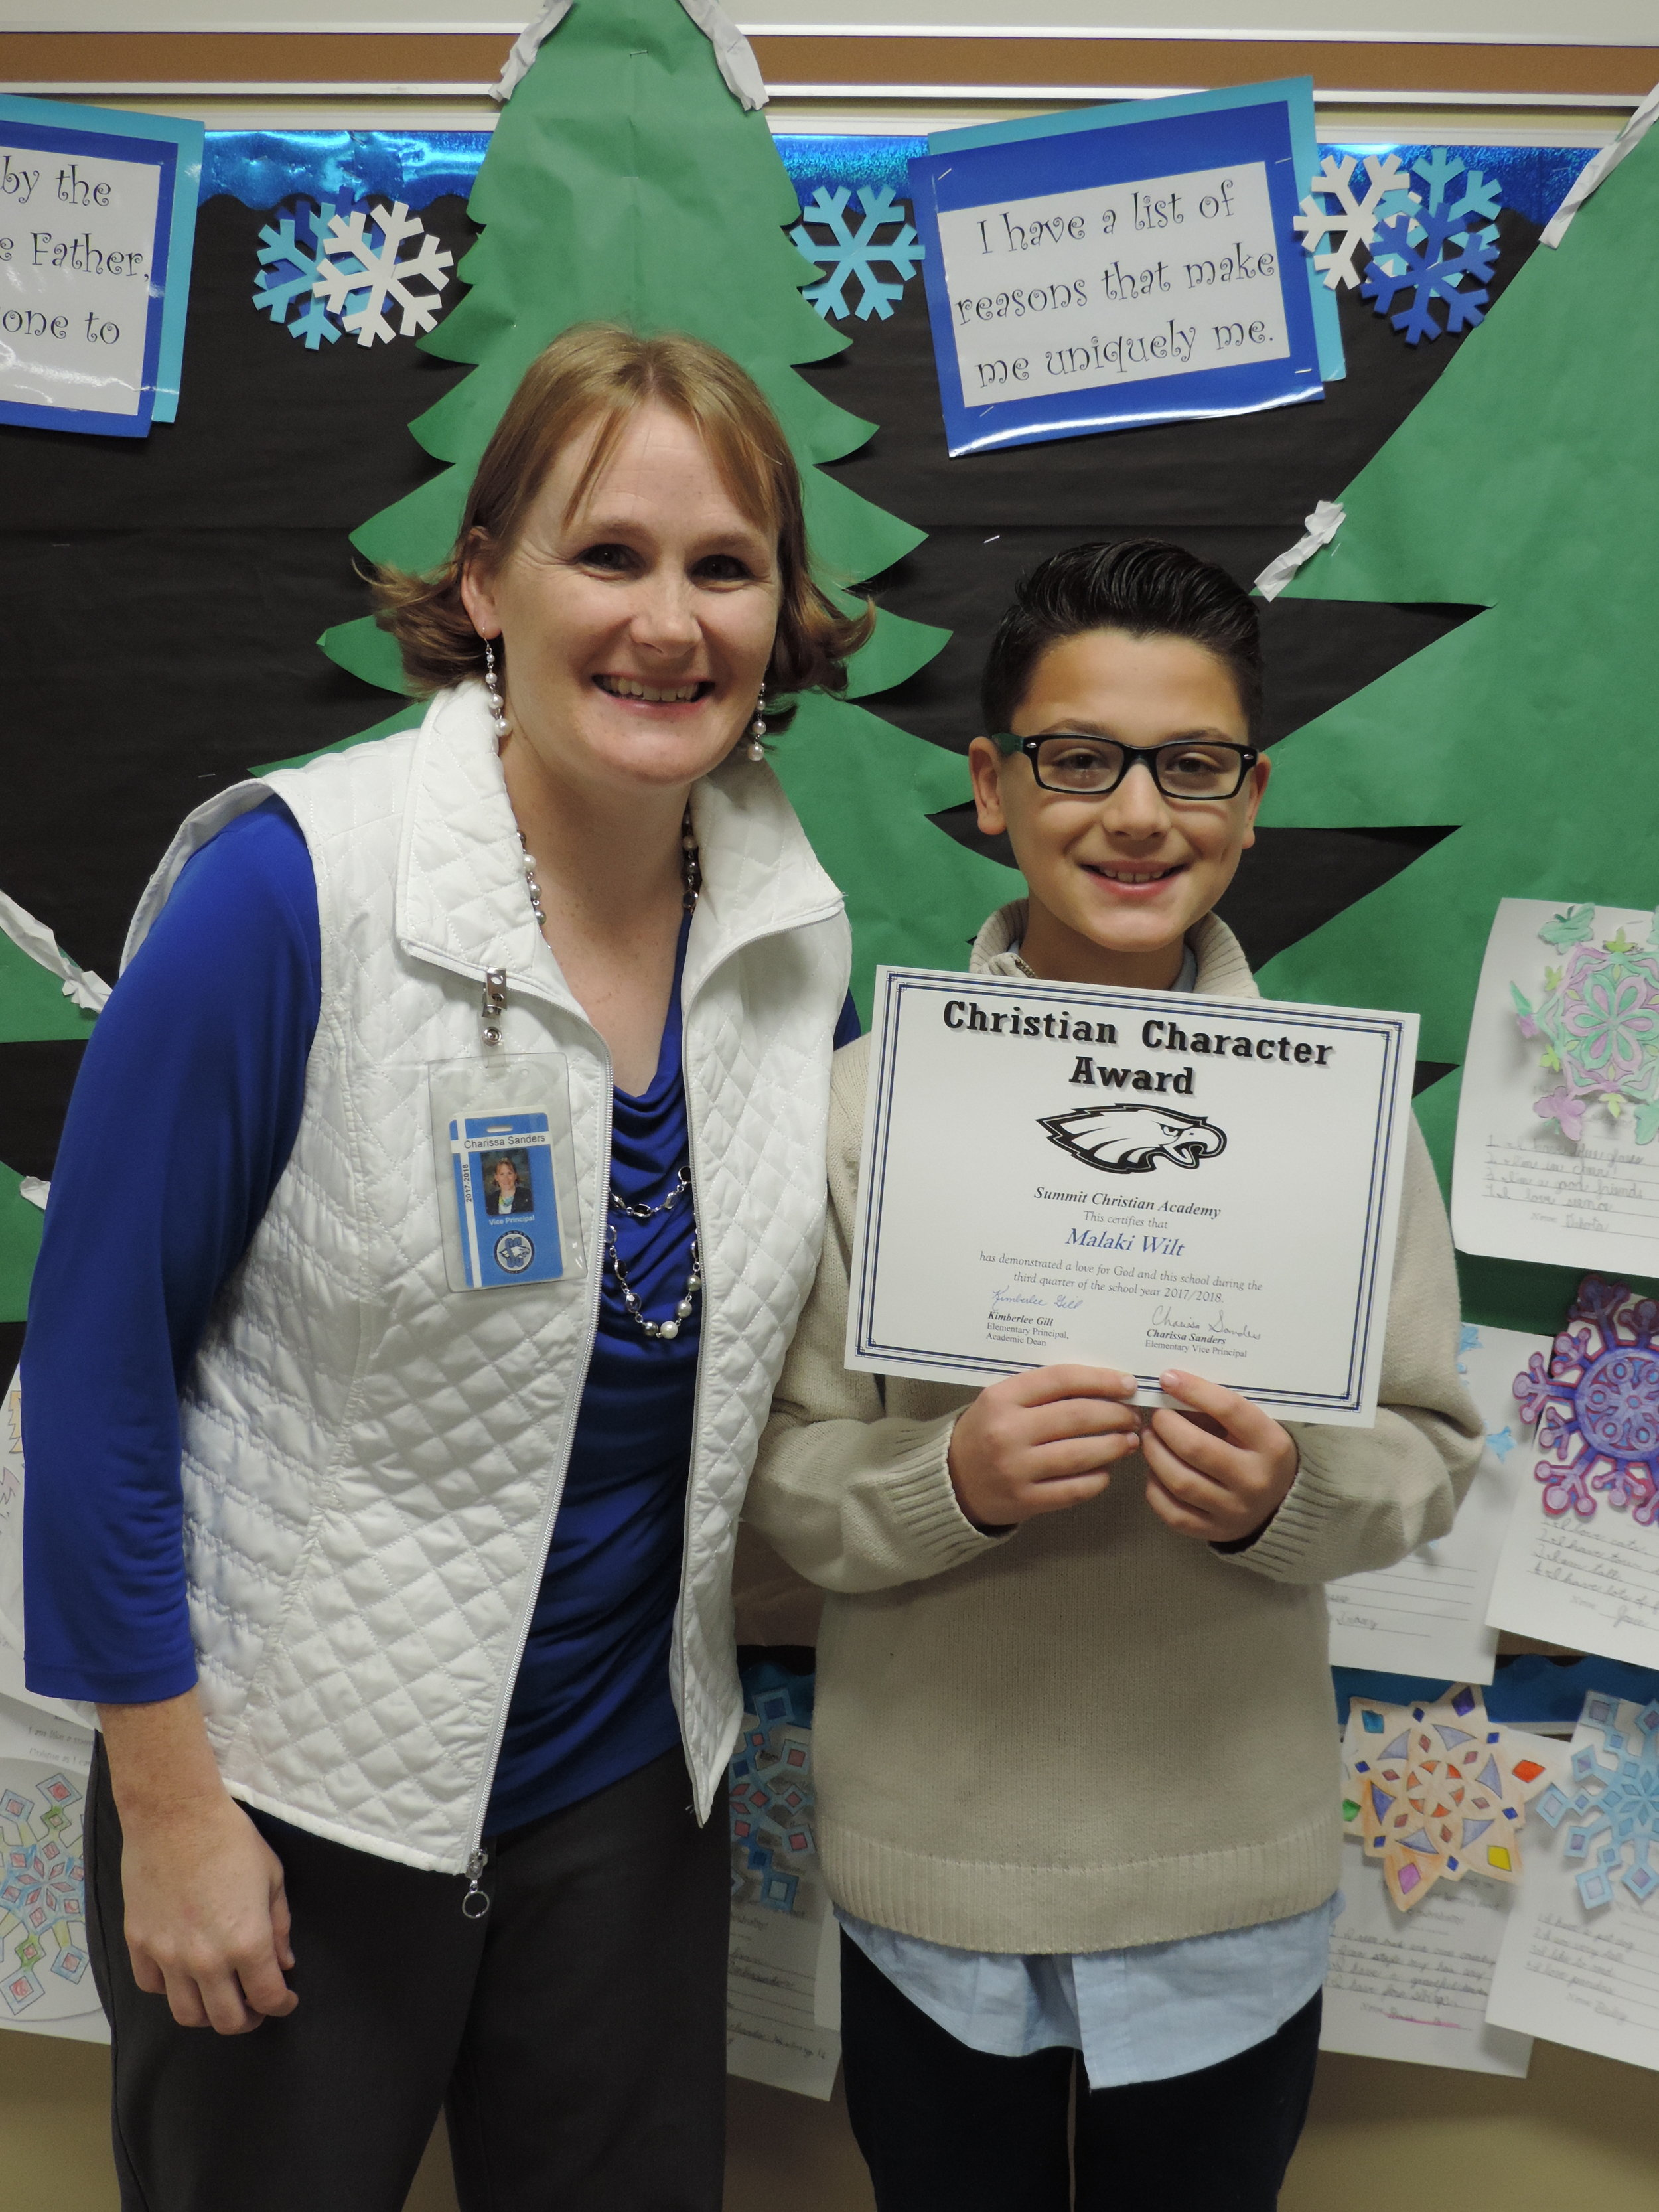 SCA fourth grade student Malaki Wilt, pictured with SCA Elementary Vice-Principal Charissa Sanders, received an elementary Christian Character Award for second quarter.